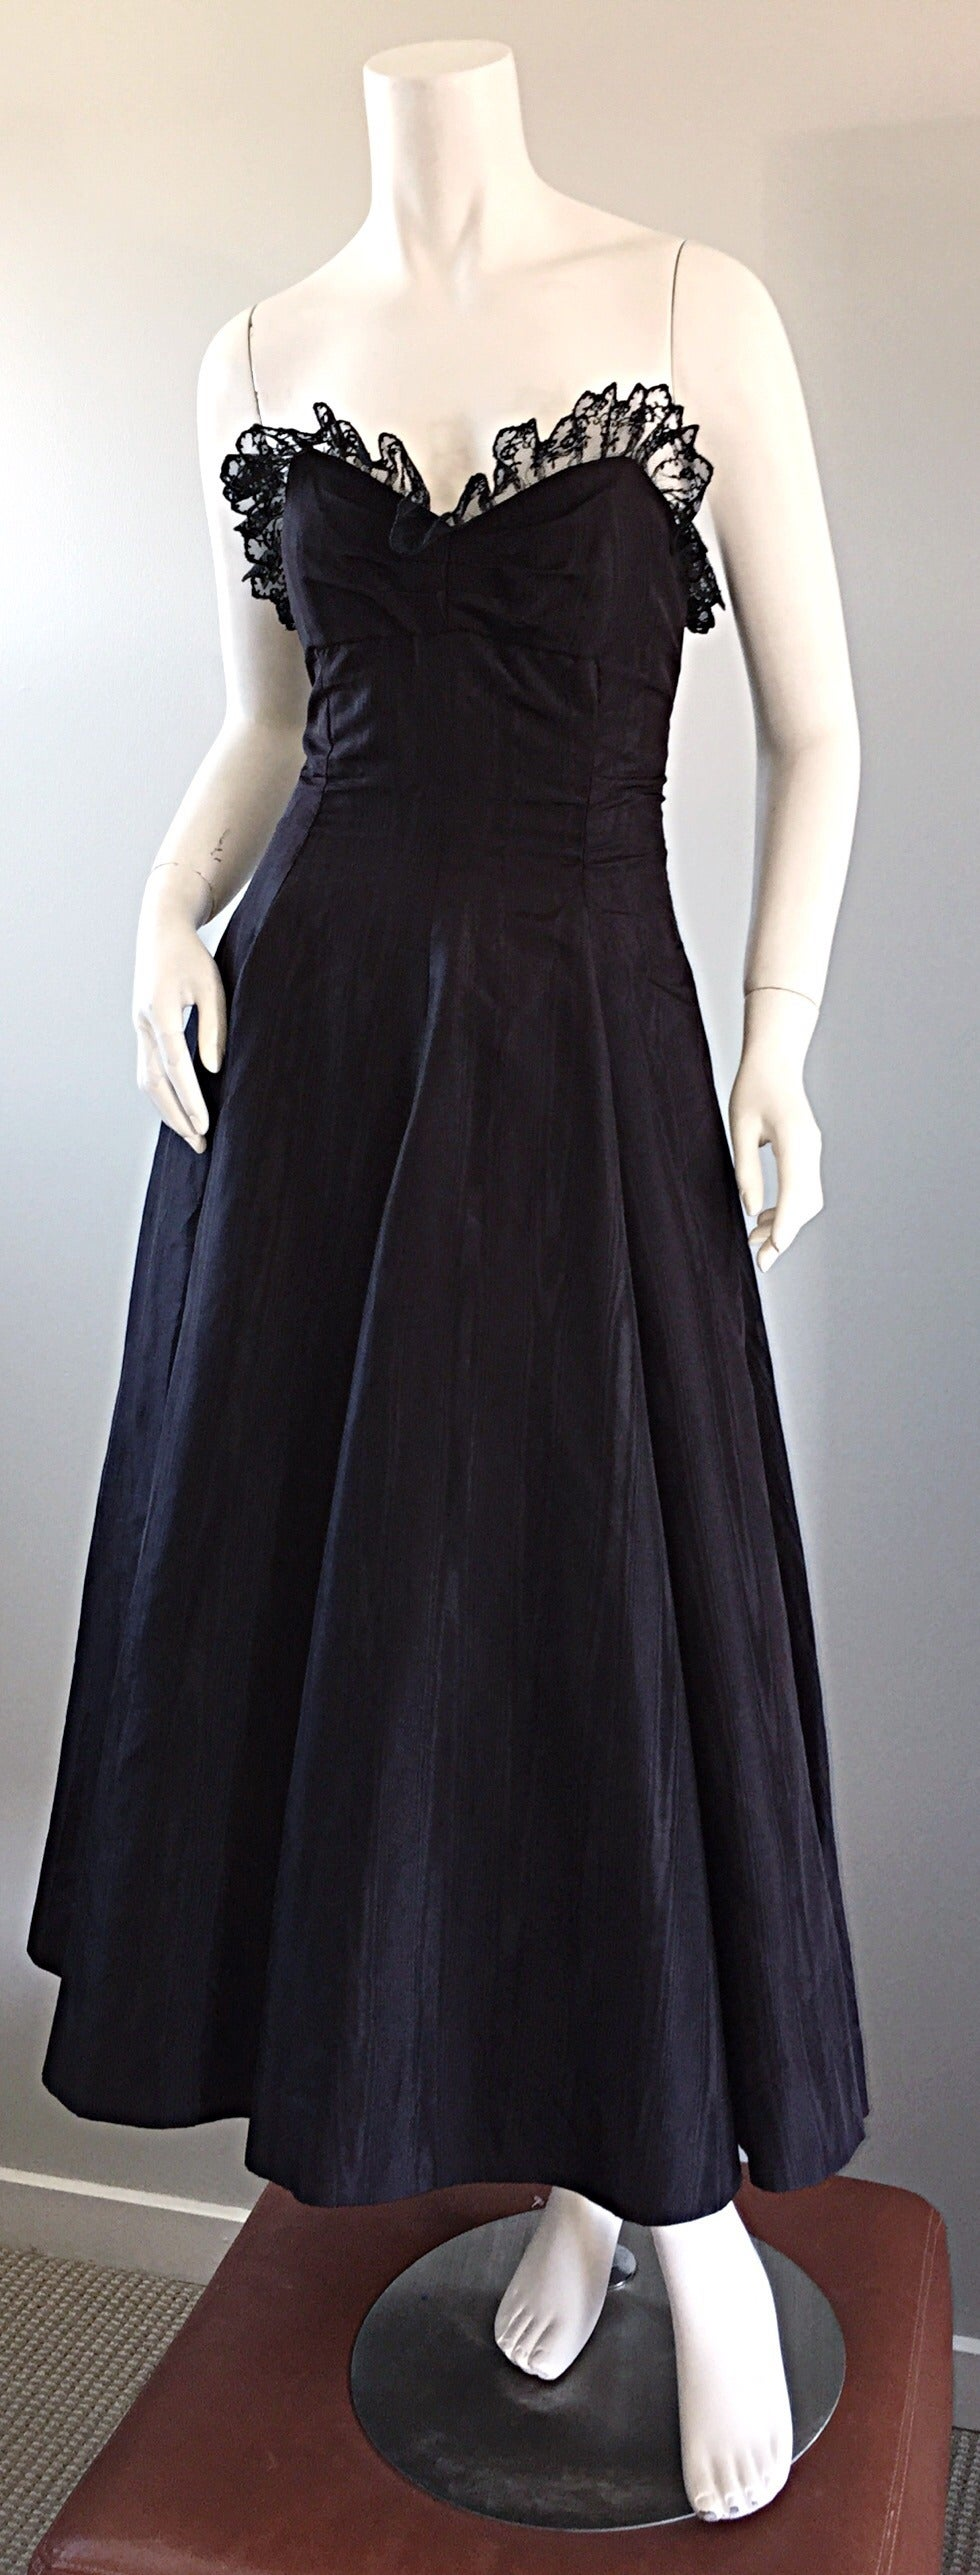 "1950s 50s Black Silk Taffeta + Lace Strapless "" New Look "" Vintage Dress 3"